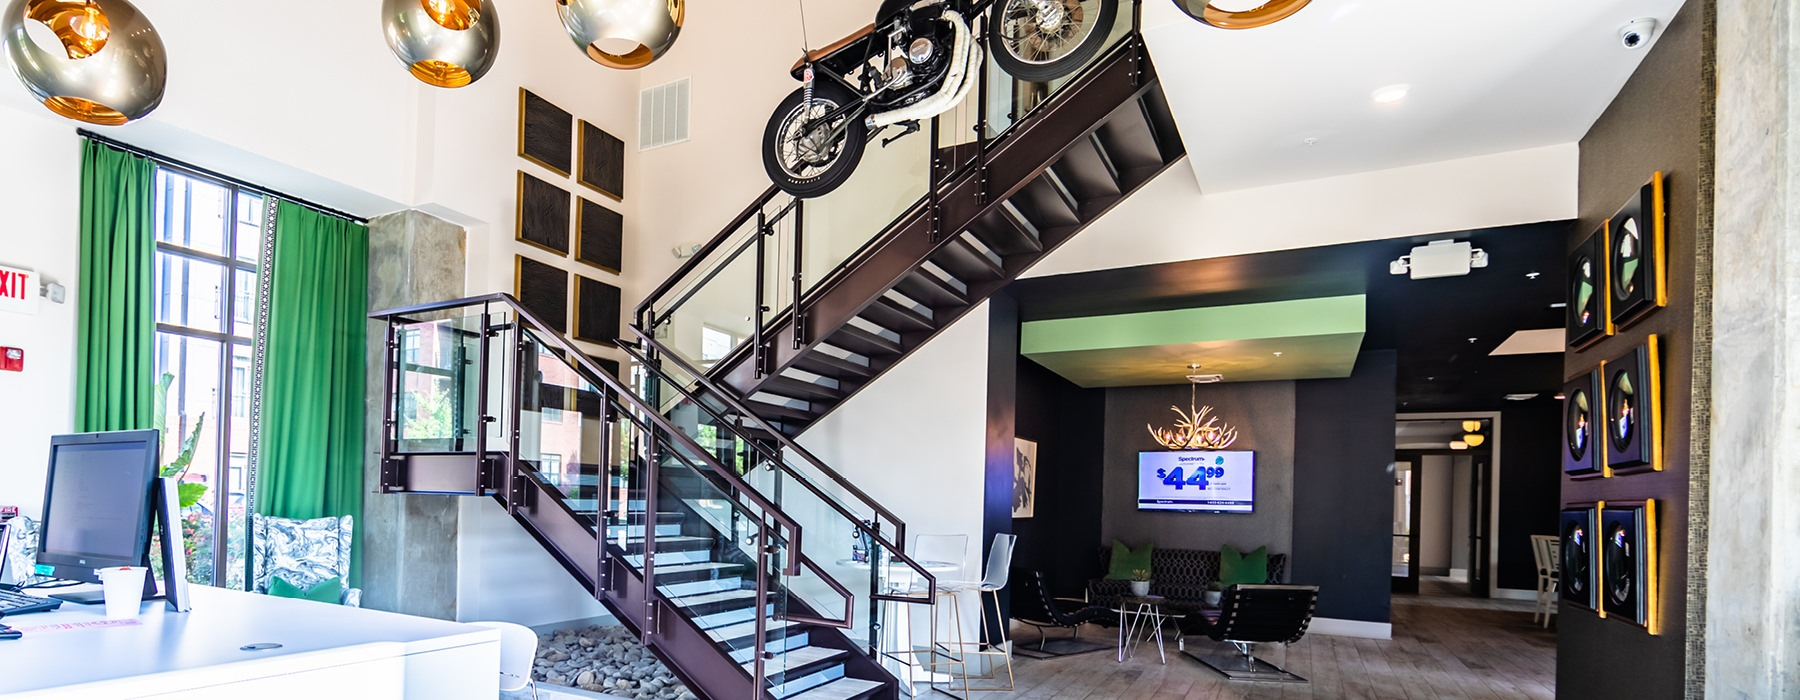 Lobby has industrial stairs and floor-to-ceiling windows